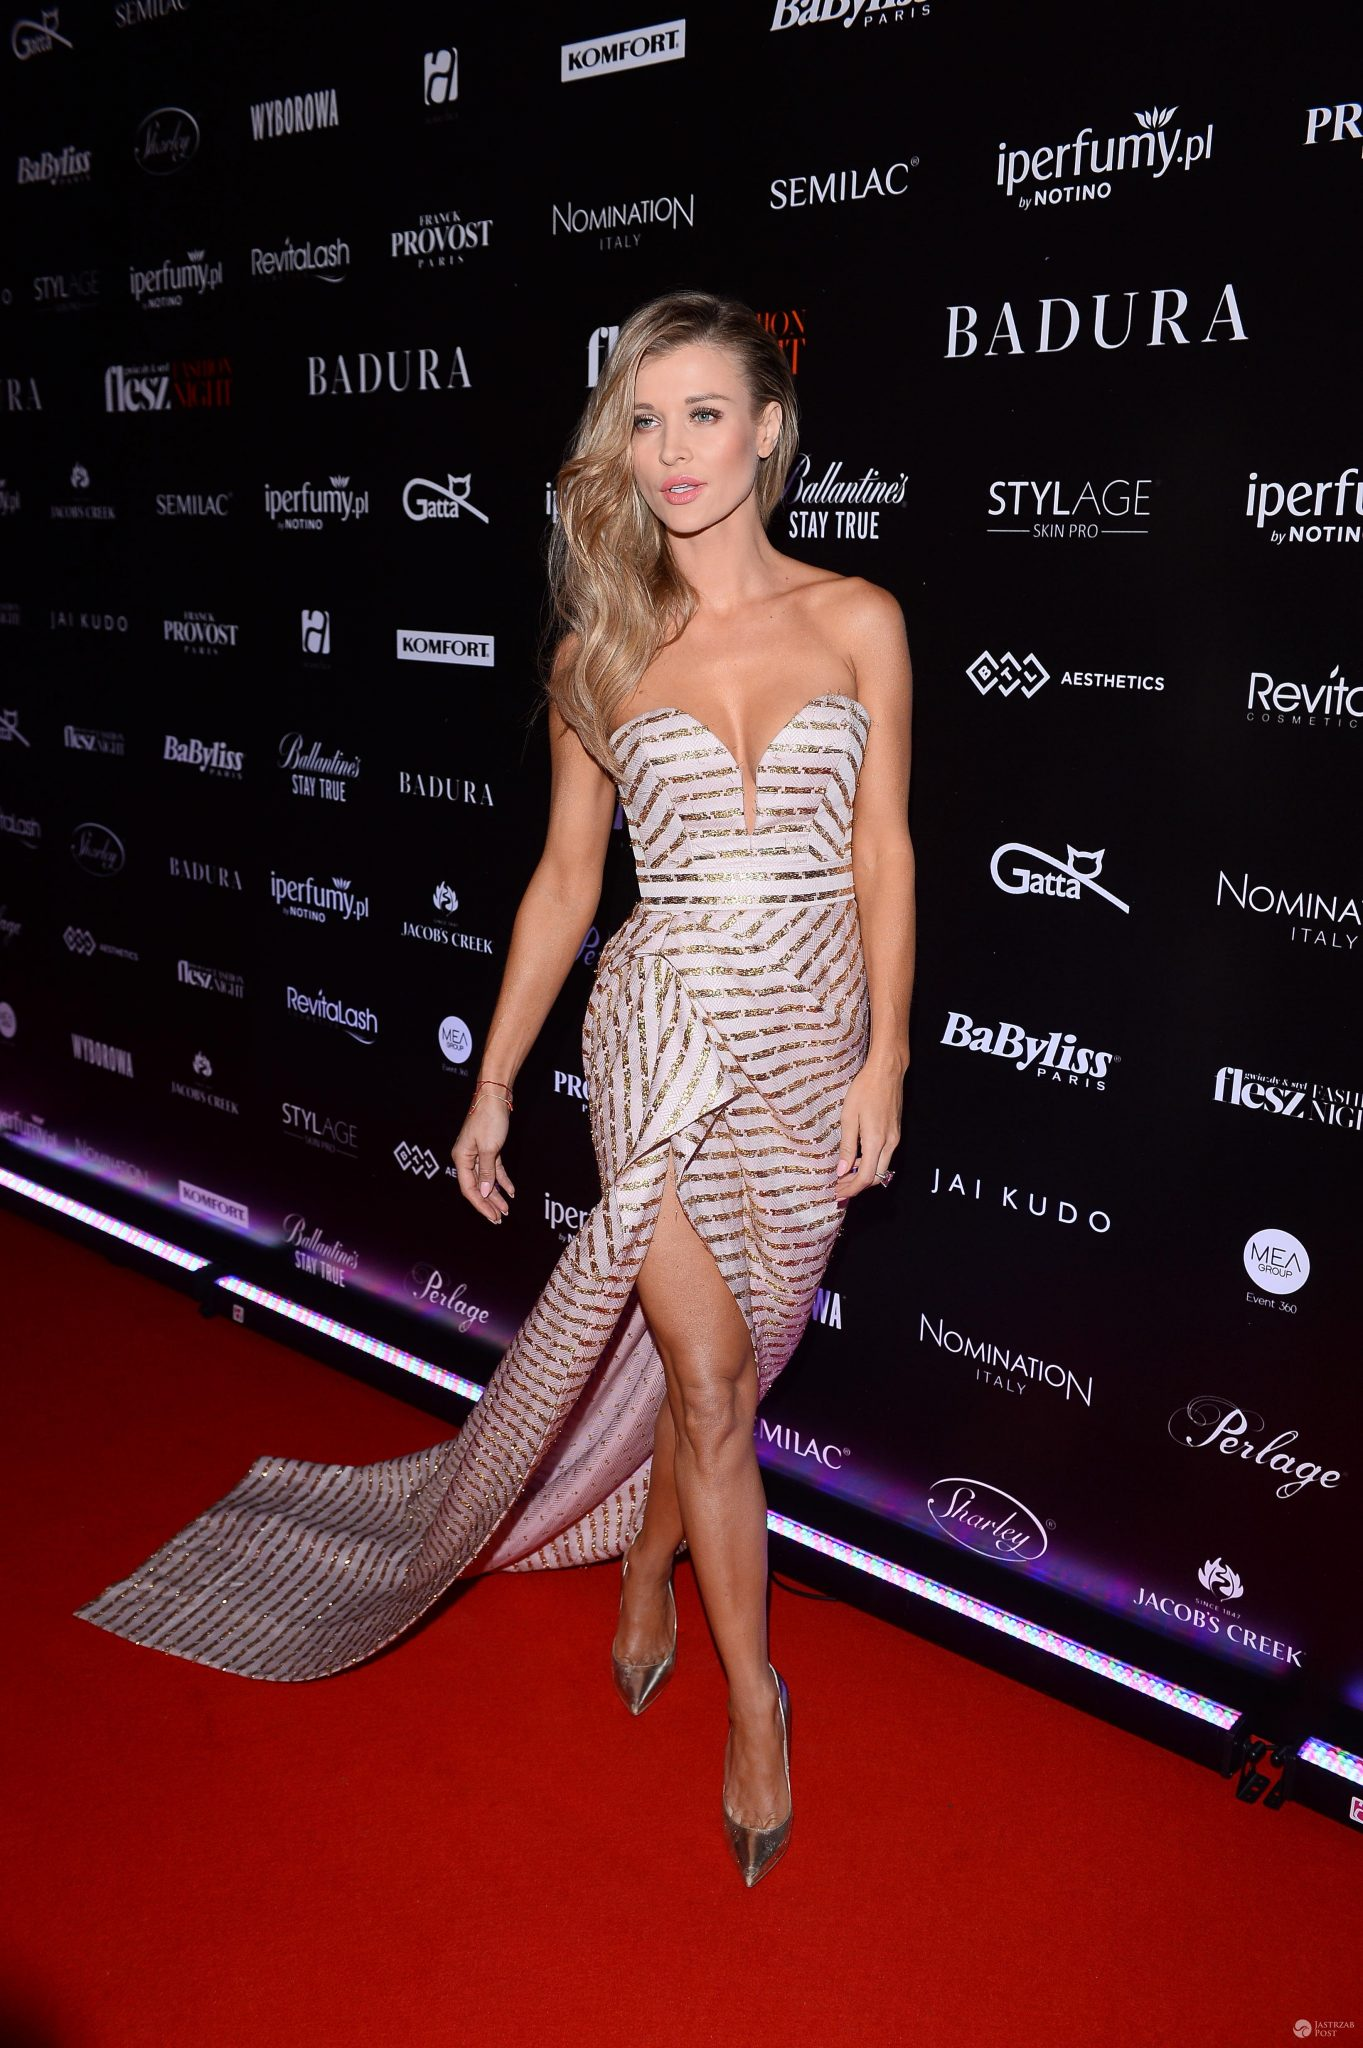 Joanna Krupa - Flesz Fashion Night 2017